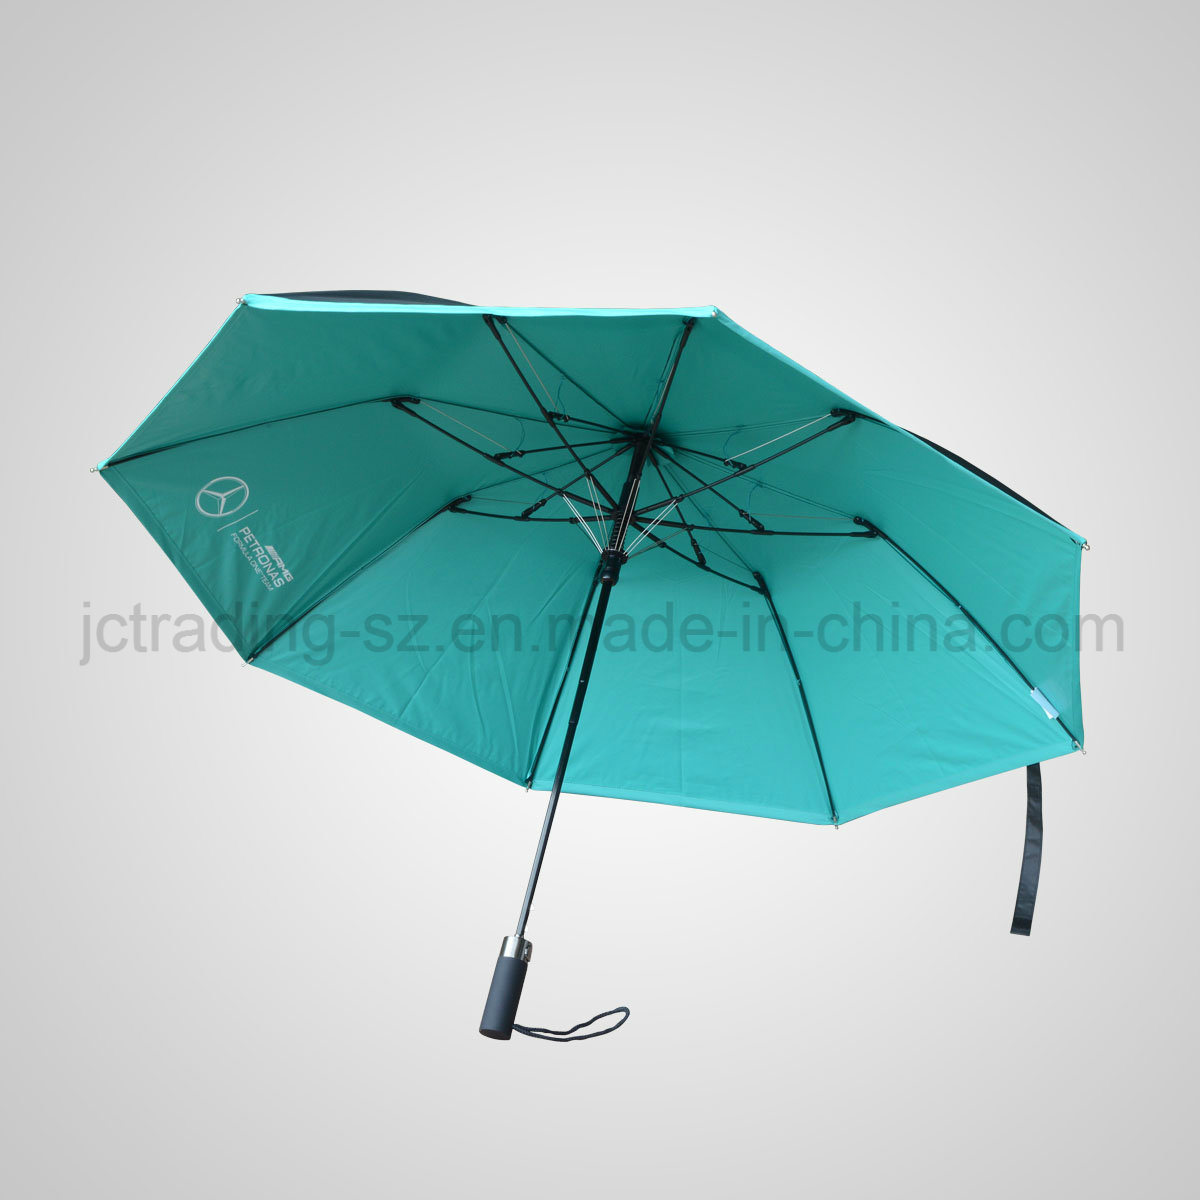 2 Section Automaic Folding Umbrella Rain & Sun Parasol (JF-ABZ201)